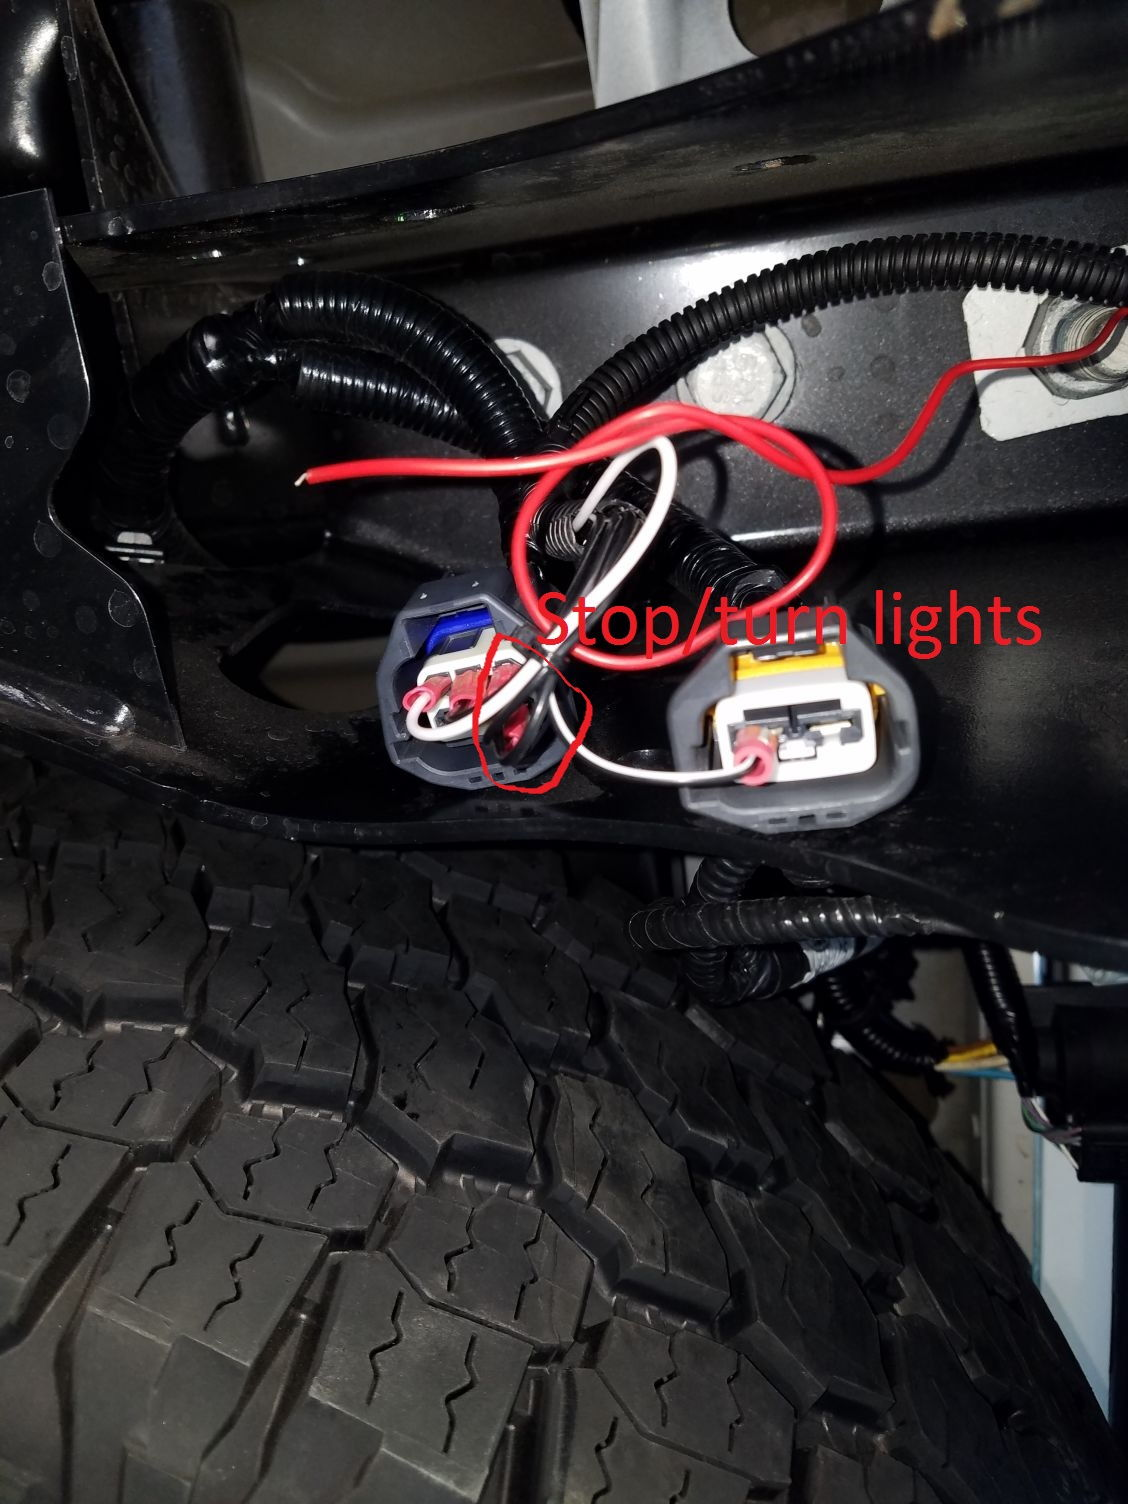 ford pickup bed wiring third brake light wire    ford    truck enthusiasts forums  third brake light wire    ford    truck enthusiasts forums